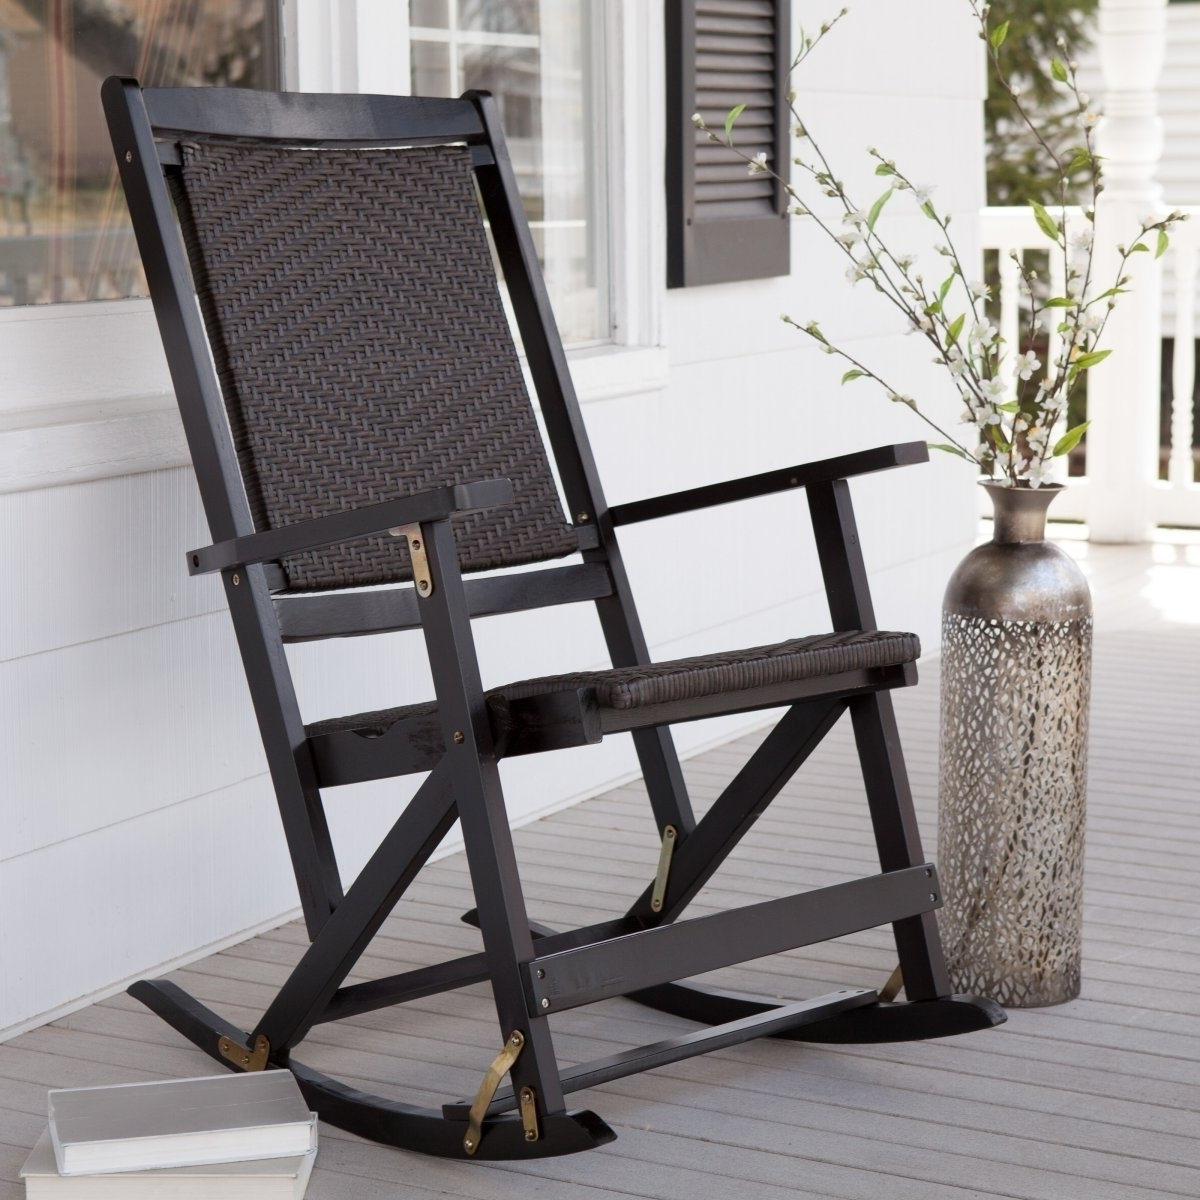 Fashionable Garden & Patio Furniture : Outdoor Outside Wooden Rocking Chairs With Patio Wooden Rocking Chairs (View 7 of 20)